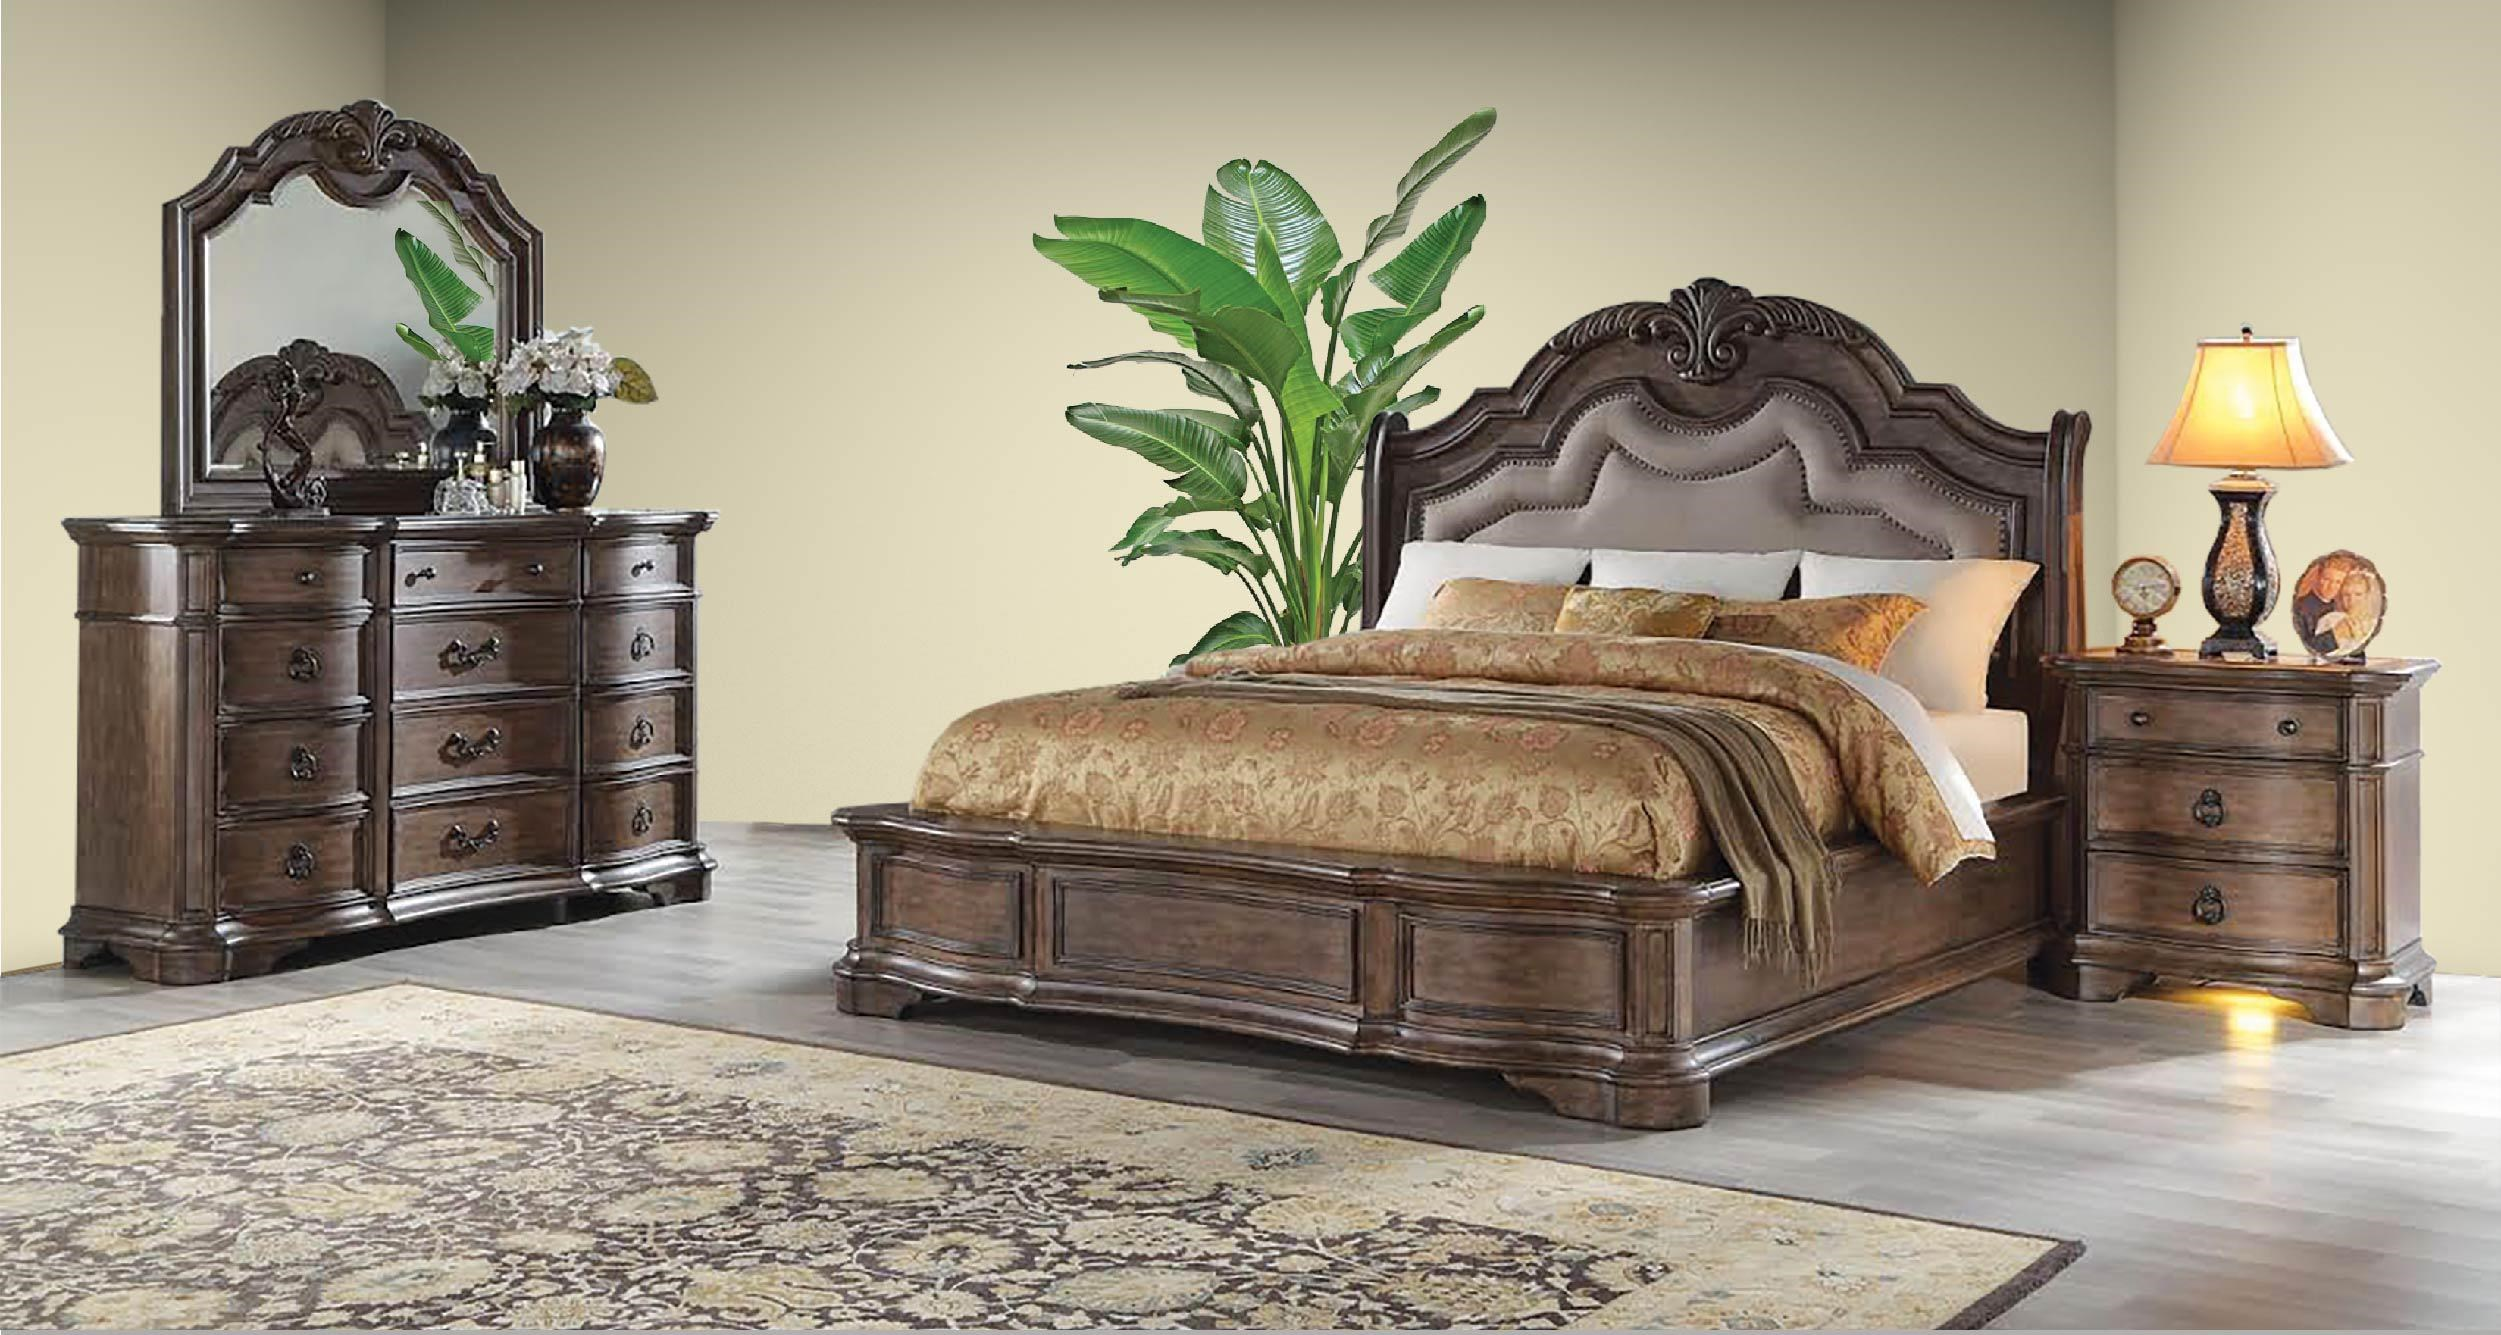 Tulsa 6 Piece King Bedroom by Avalon Furniture at Household Furniture